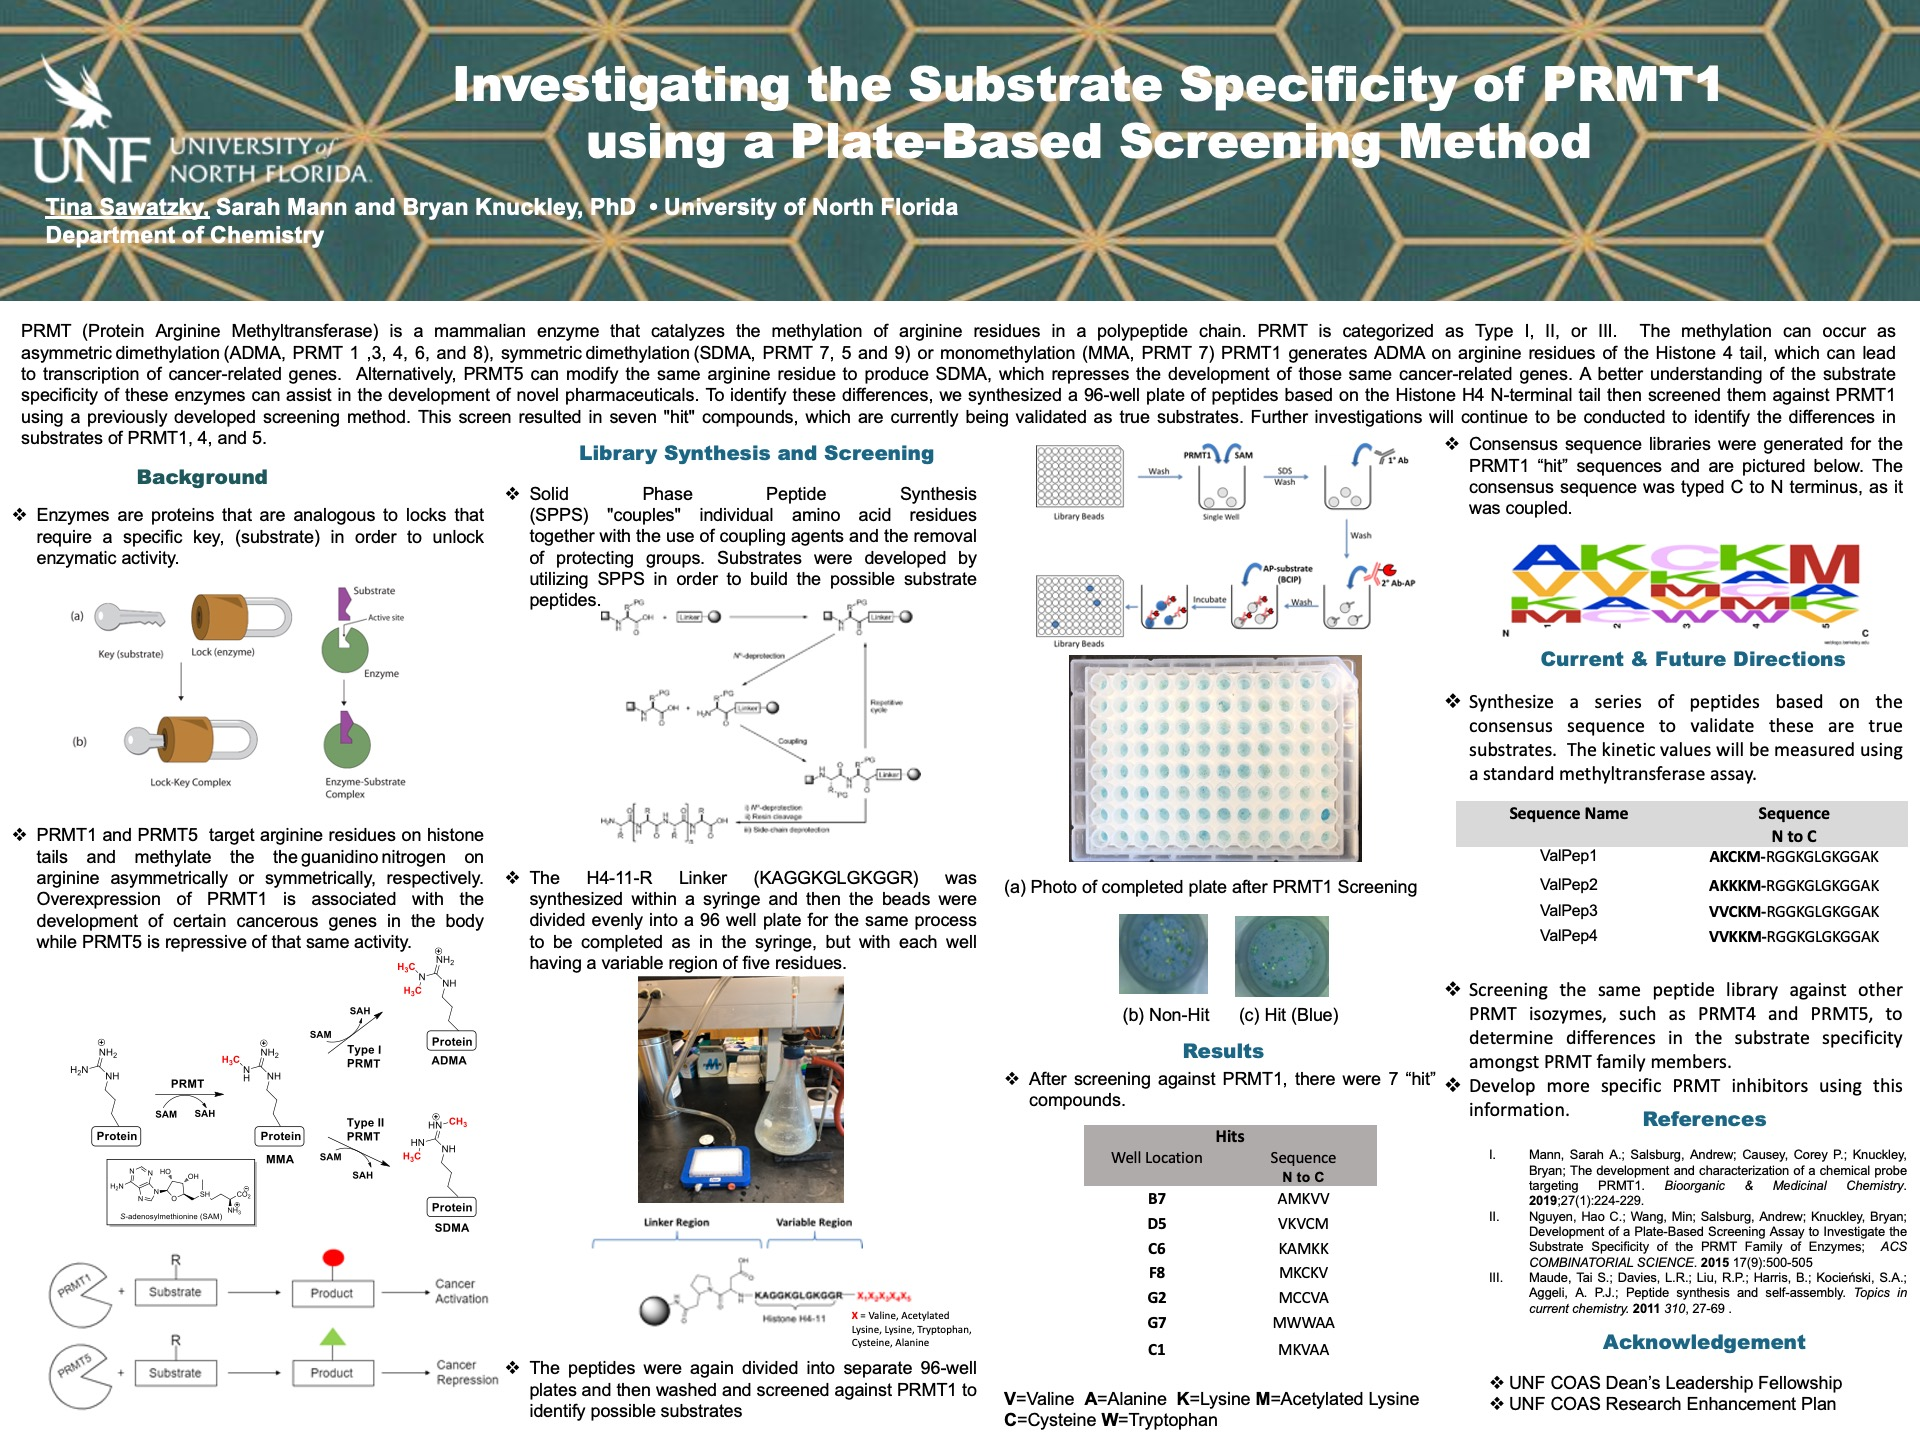 Investigating the Substrate Specificity of PRMT1 using a Plate-Based Screening Method poster